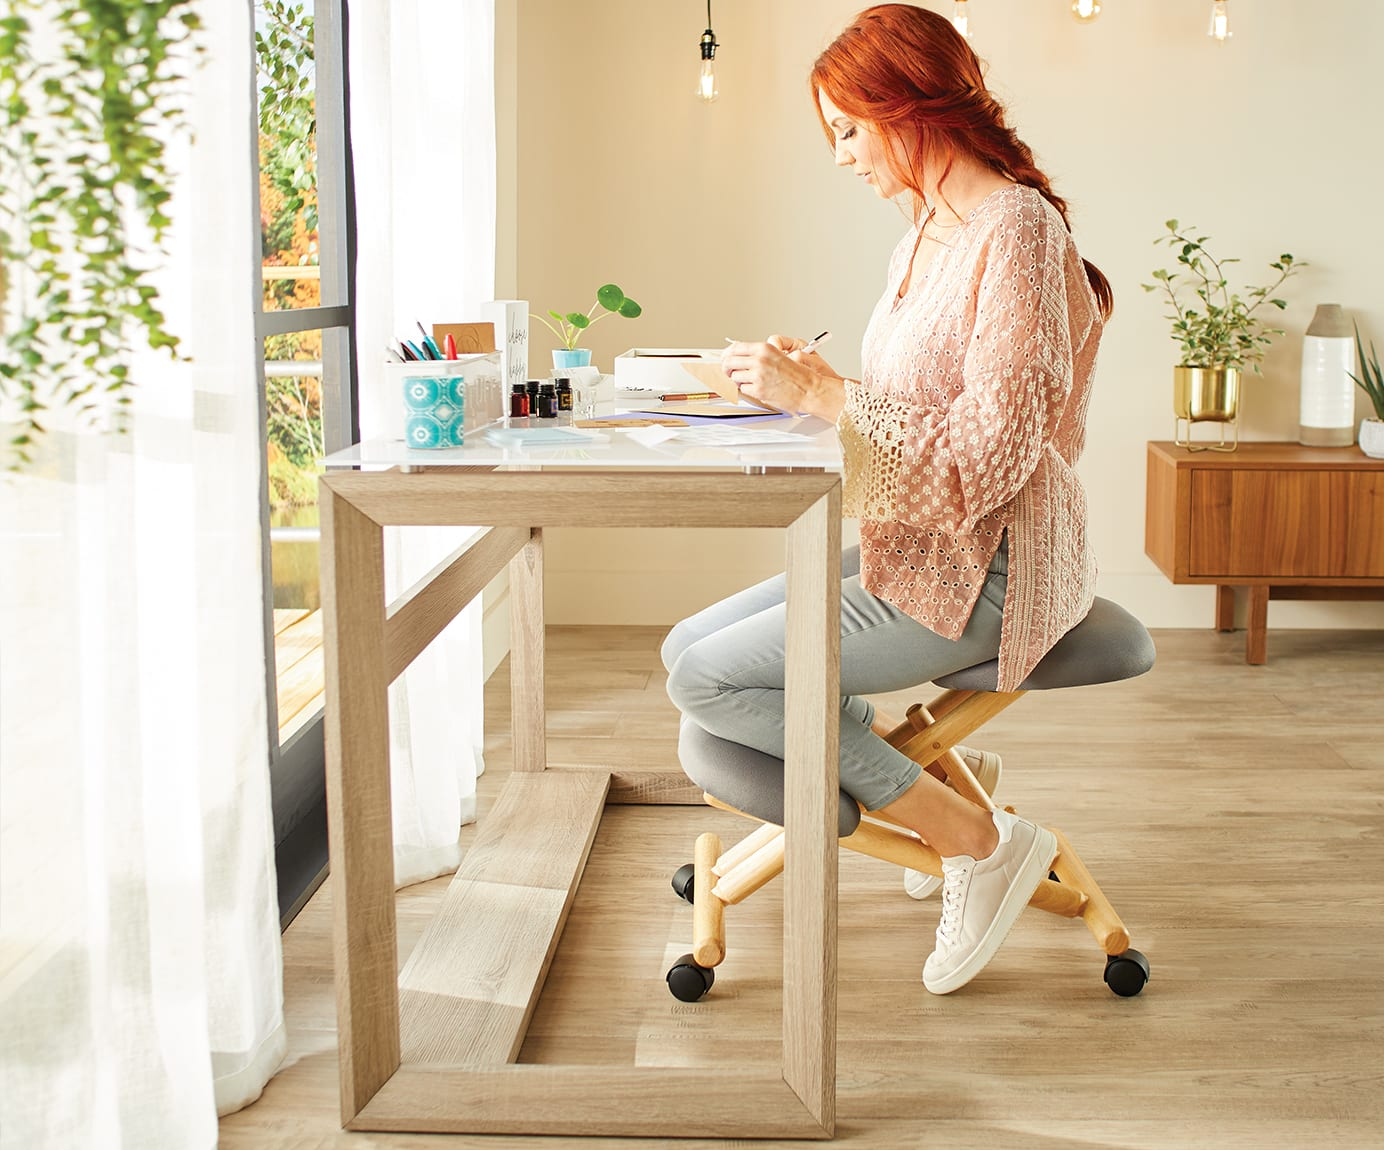 Shop all work from home essentials